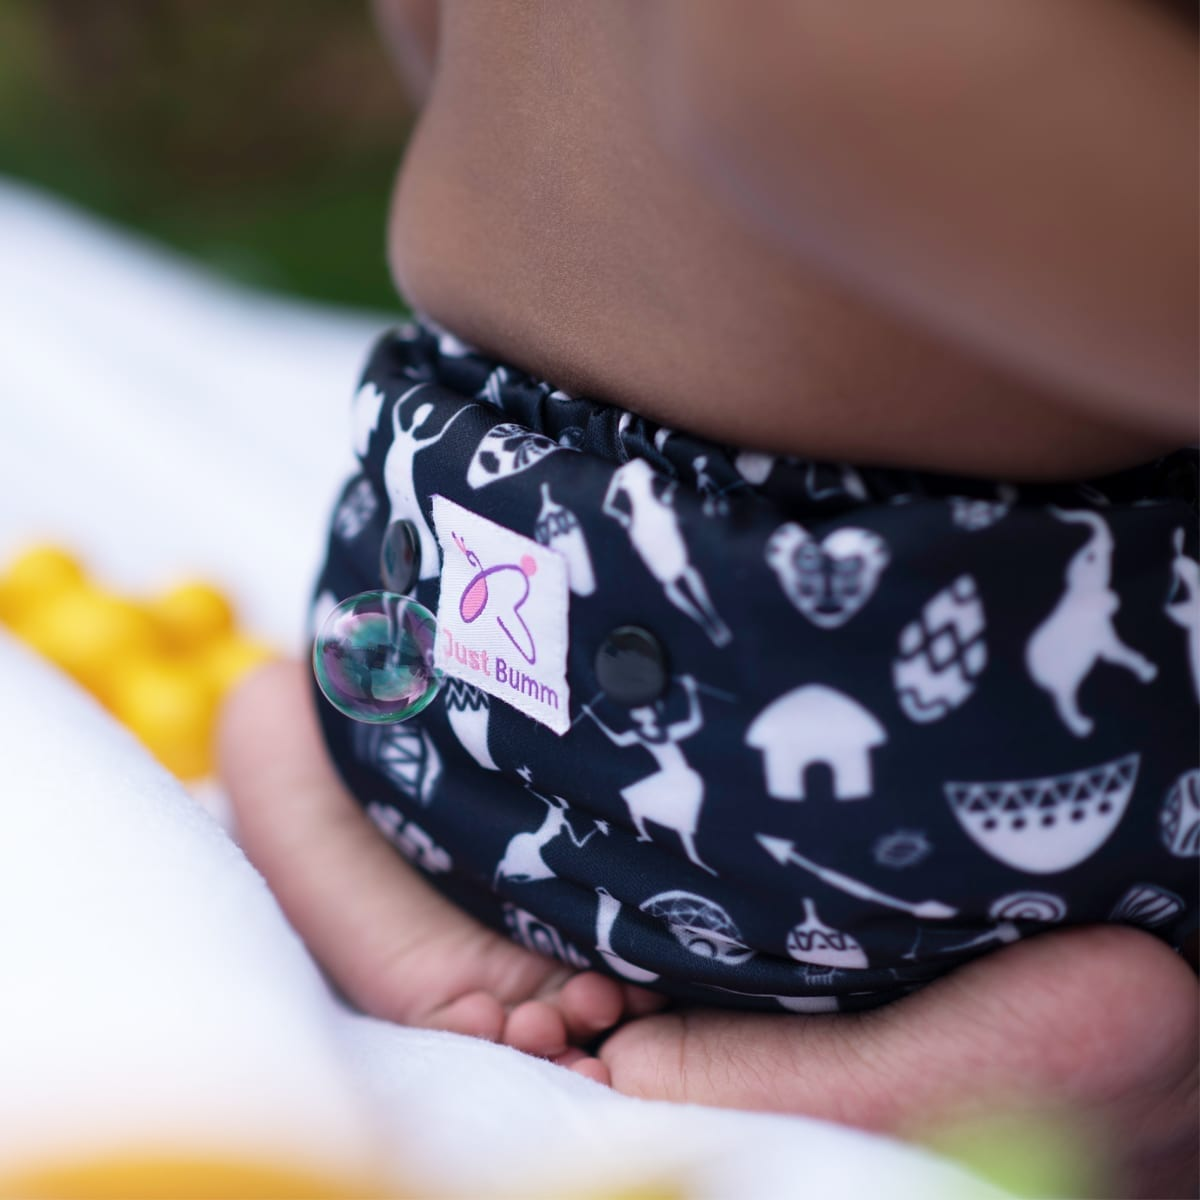 5 Reasons to choose cloth diapers